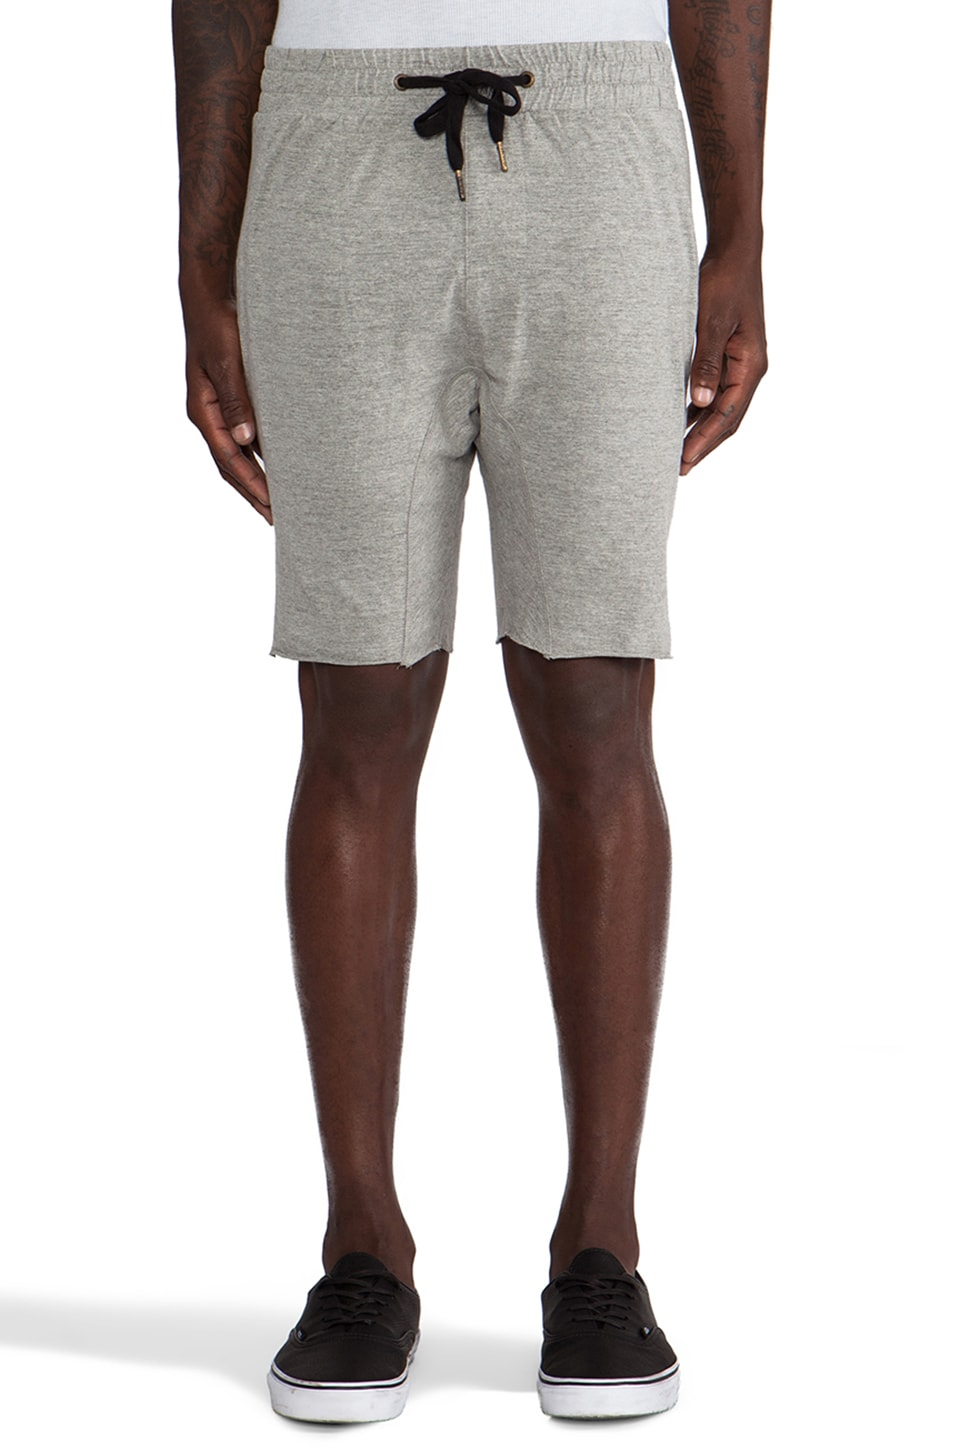 Zanerobe Das Buro Short in Light Grey Marle